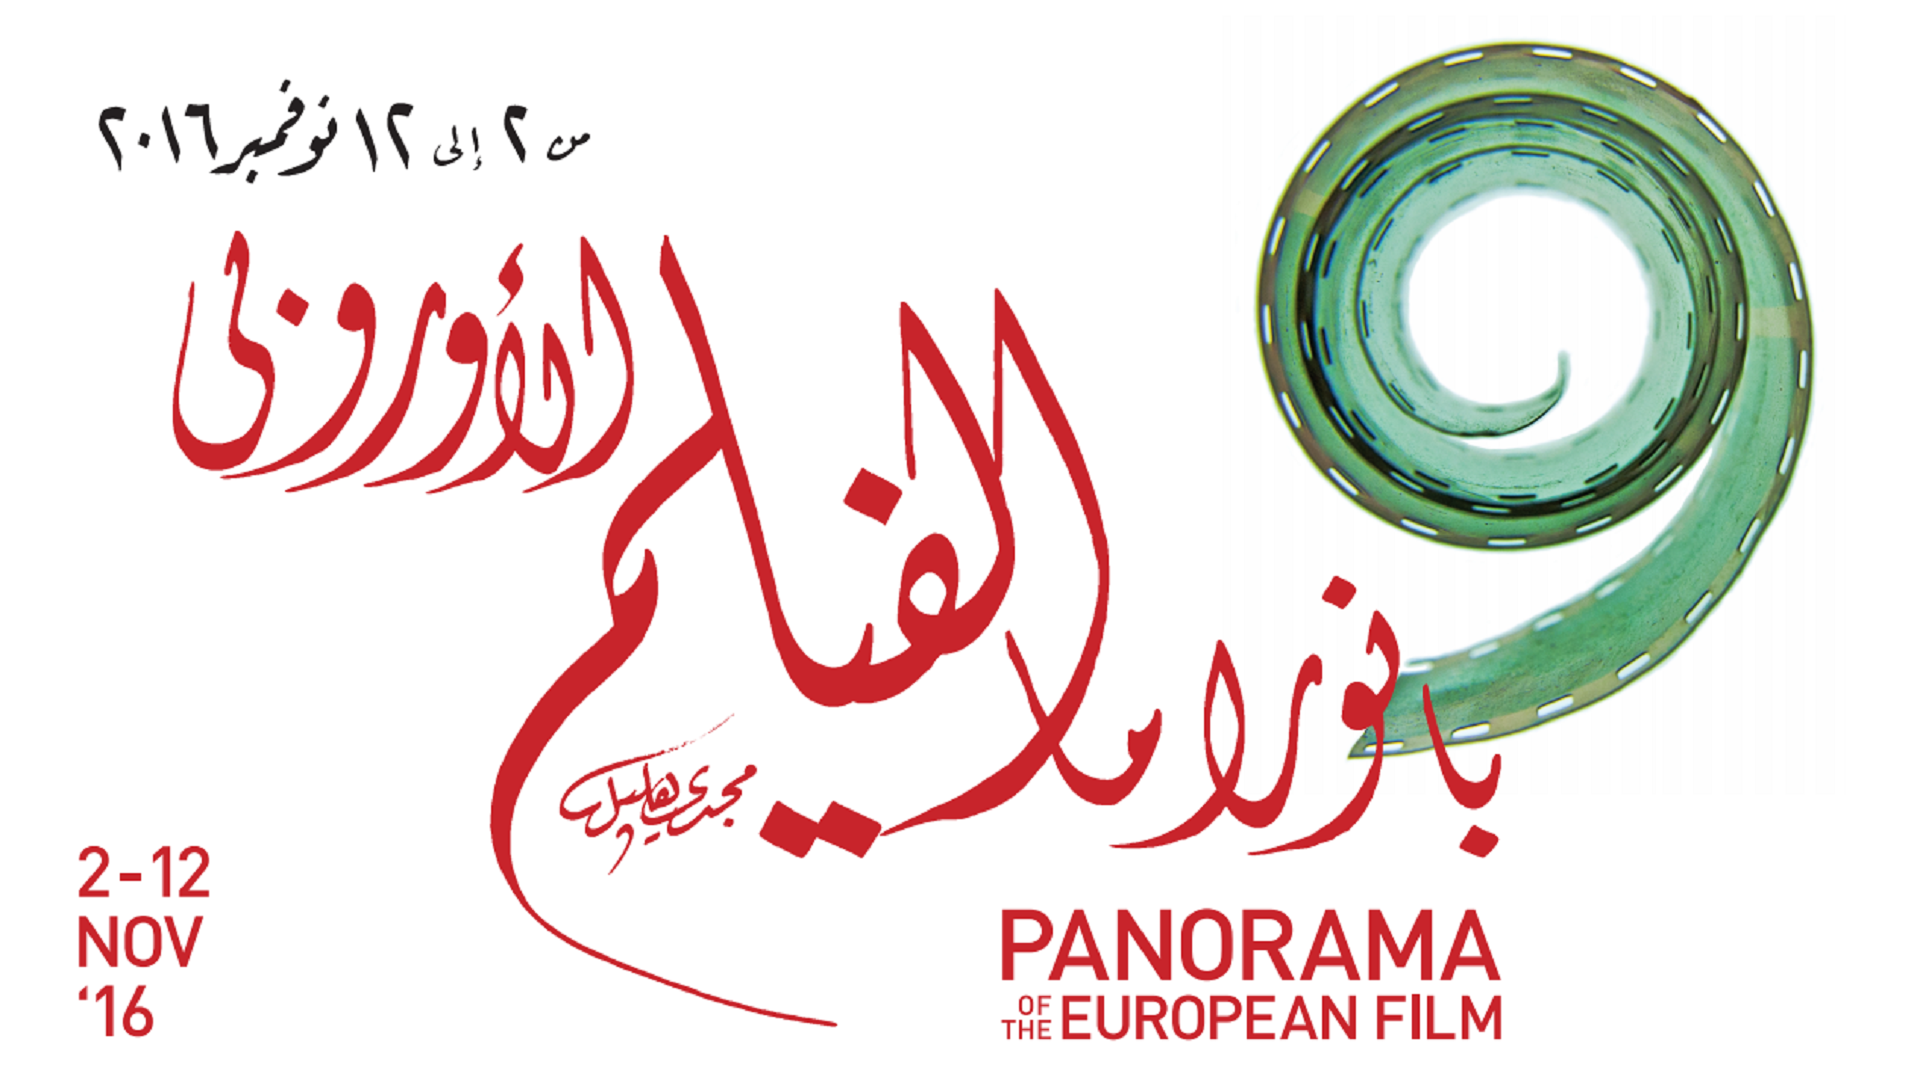 Eye on Films at the Panorama of European Film